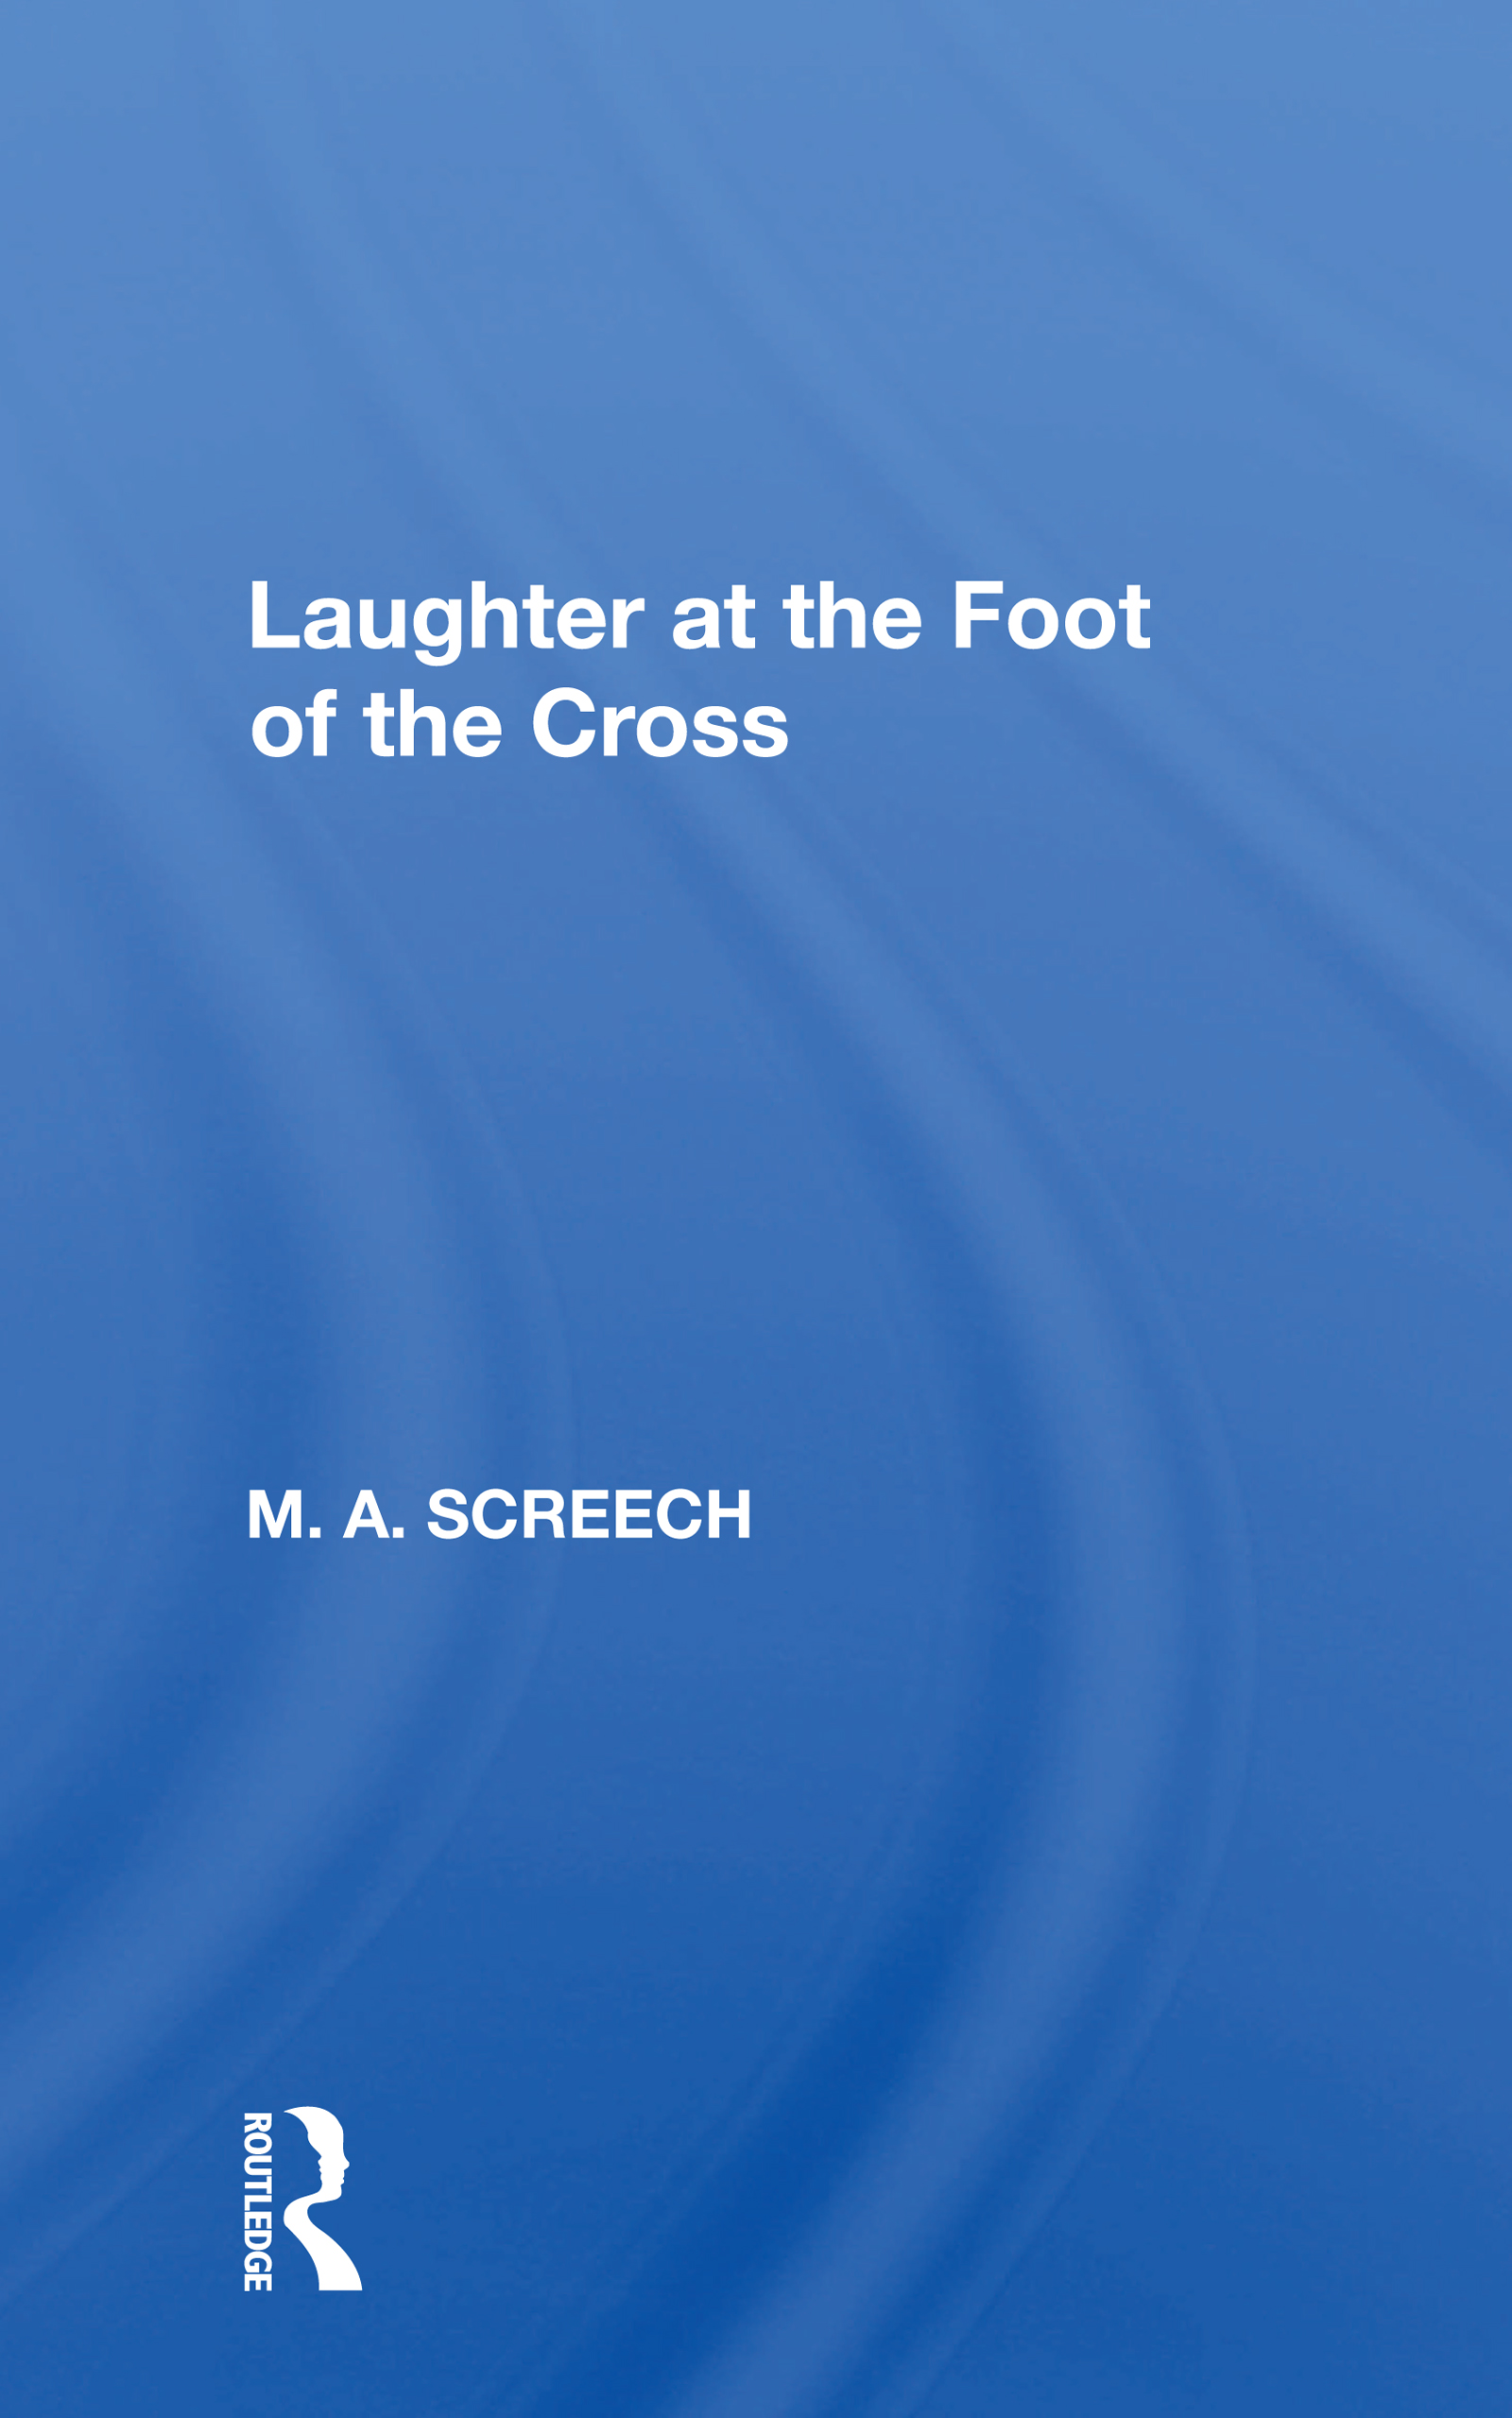 The Laughter of Jesus and the Laughter of the Father in the New Testament